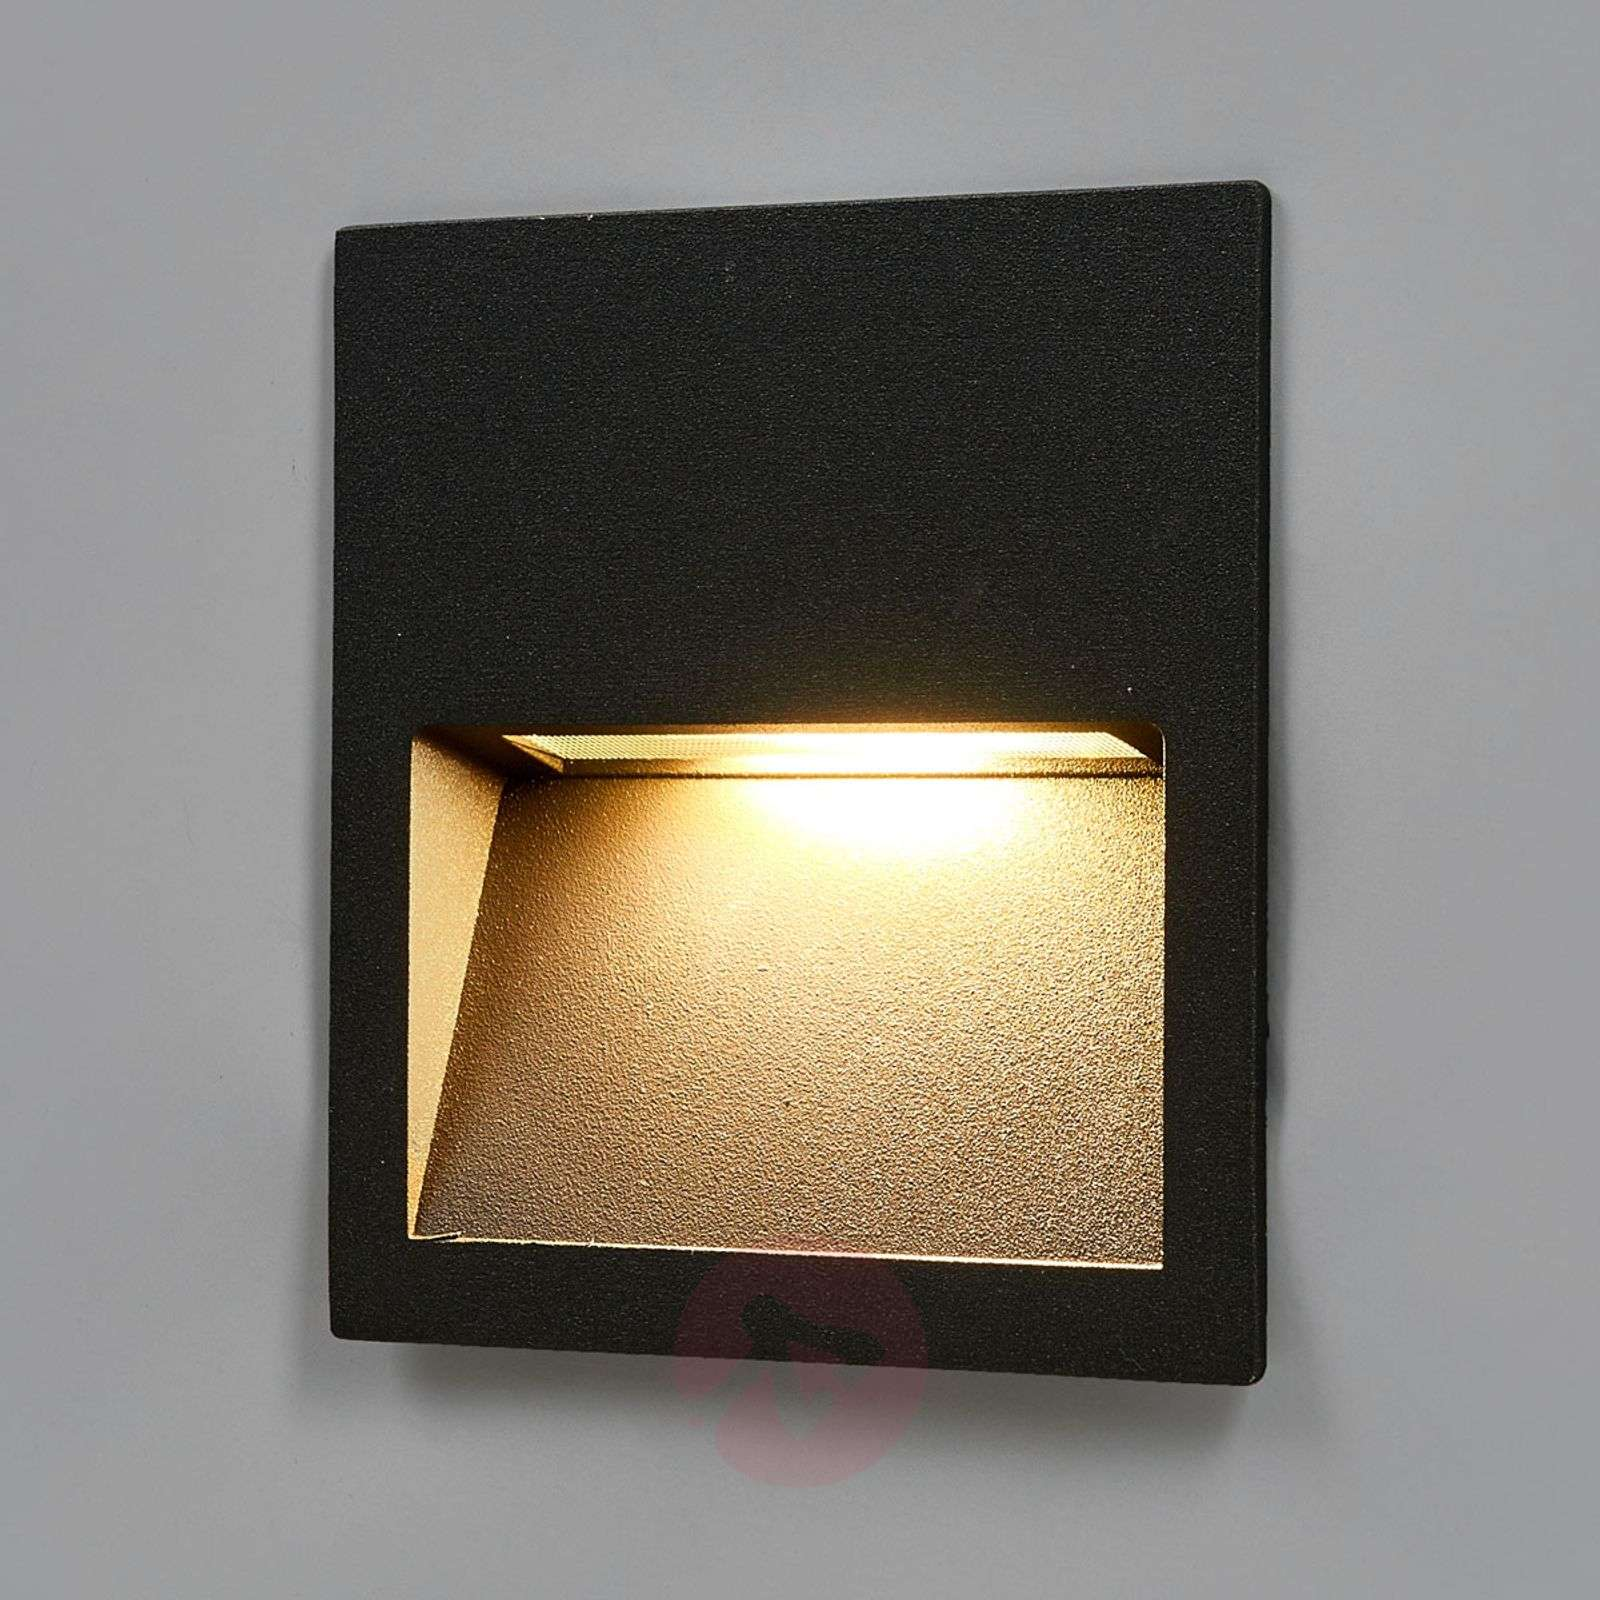 Square LED Recessed Wall Light Loya For Outdoors